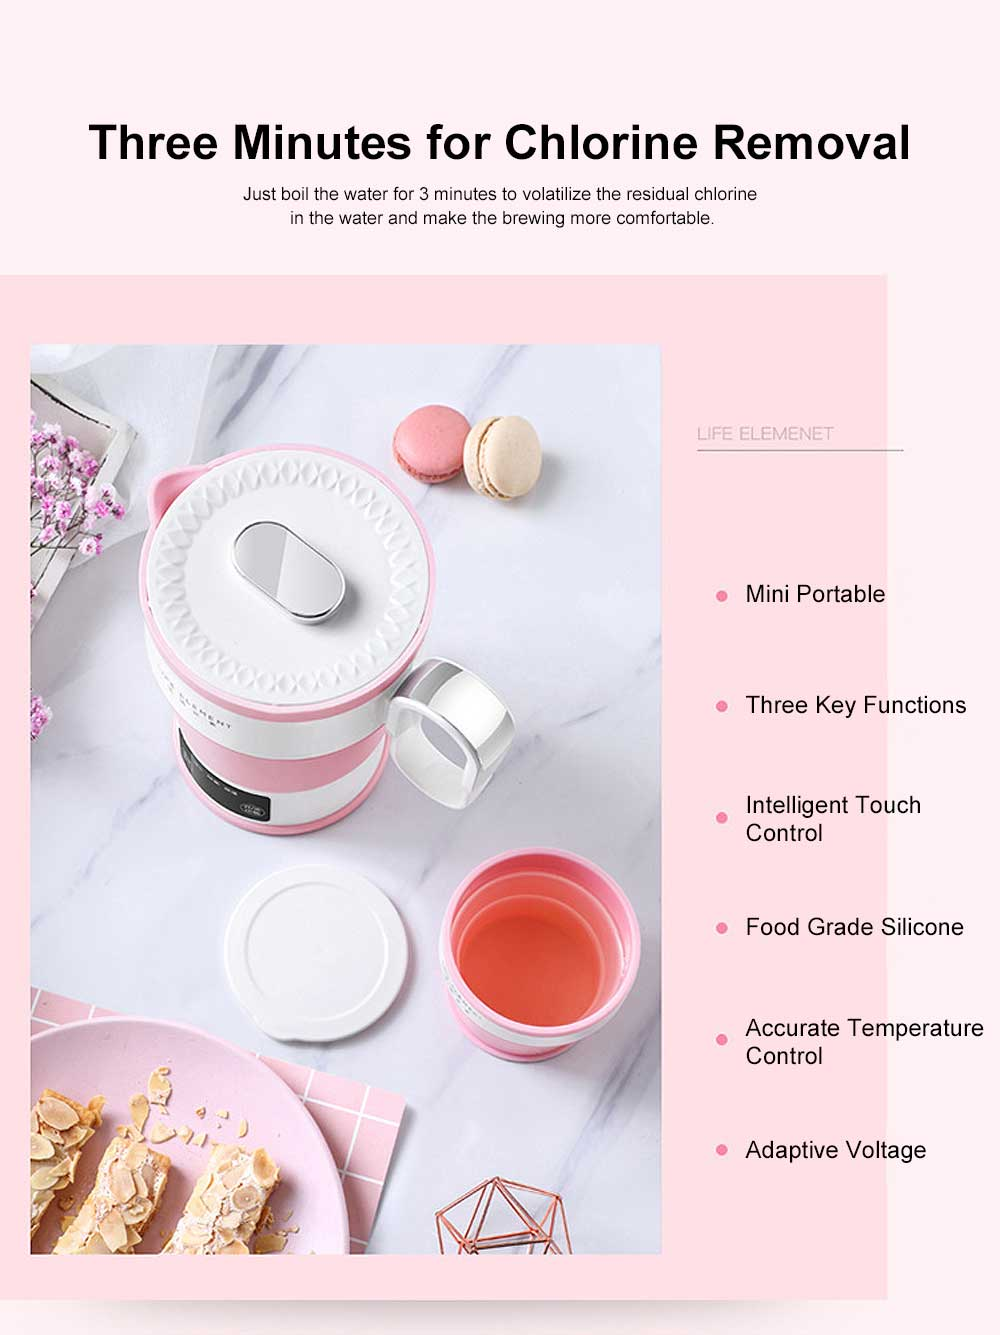 Portable Electric Heating Cup, Food Grade Silicone Pink Compression Folding Kettle for Travel, Life Element Intelligent Water Bottle 4